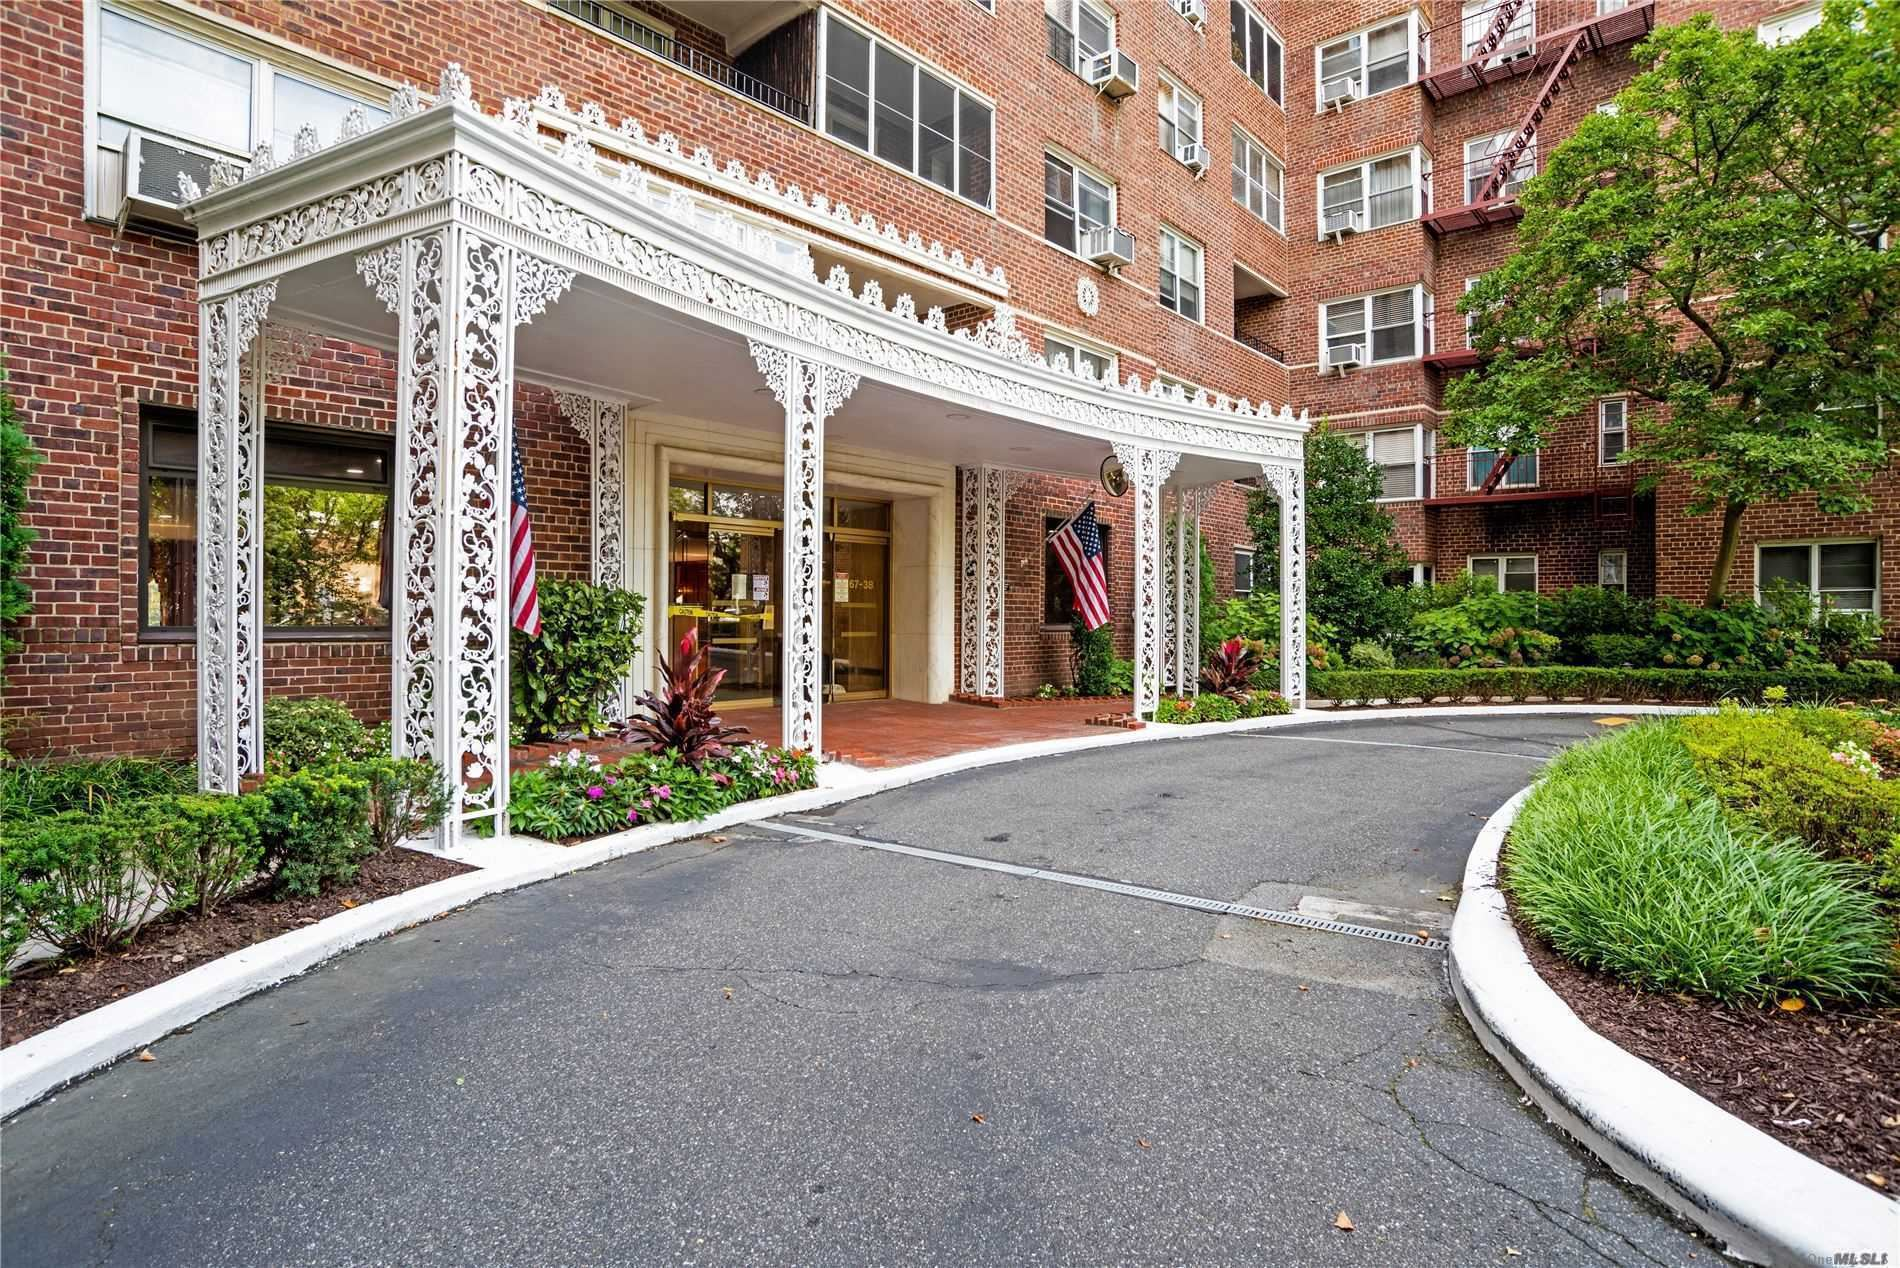 67-38 108 Street #C22, Forest Hills, NY 11375 - MLS#: 3245461